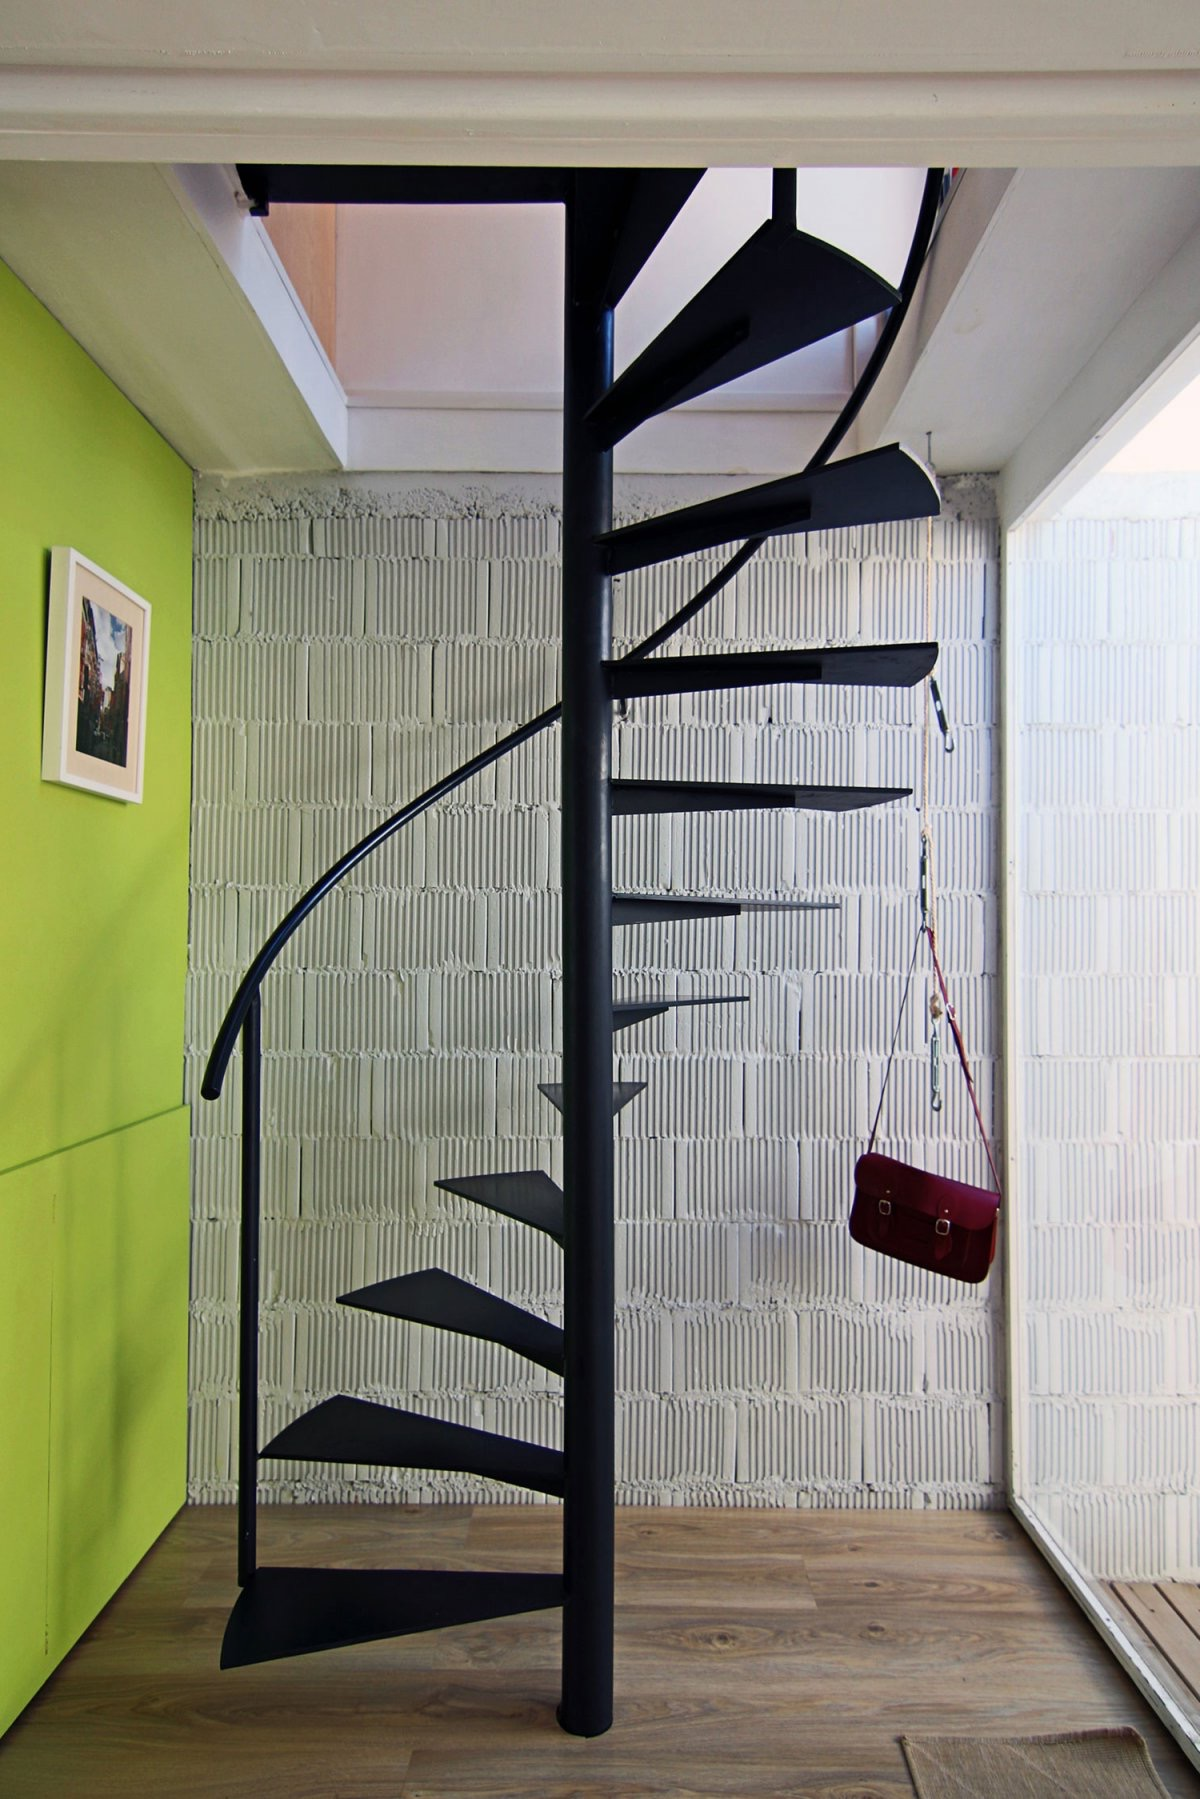 10 beauty loft stairs design ideas custom home design - Loft stairs for small spaces decor ...